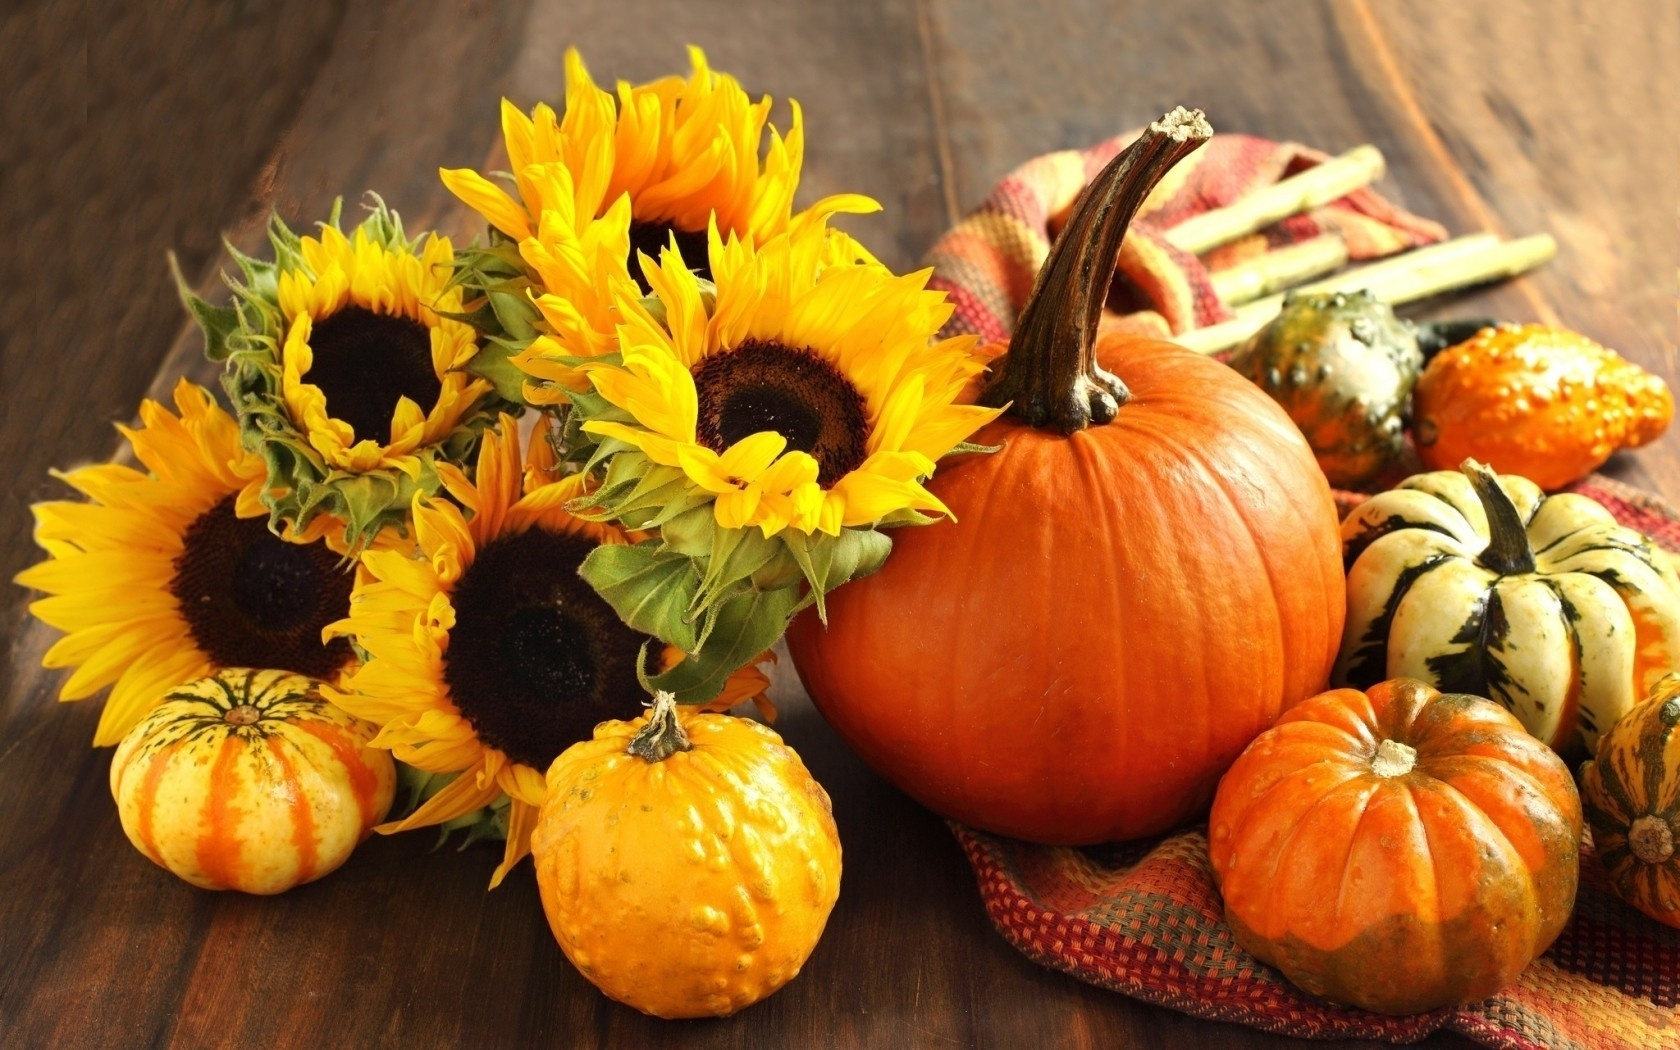 wallpaper autumn, pumpkin, sunflower, harvest, still life desktop